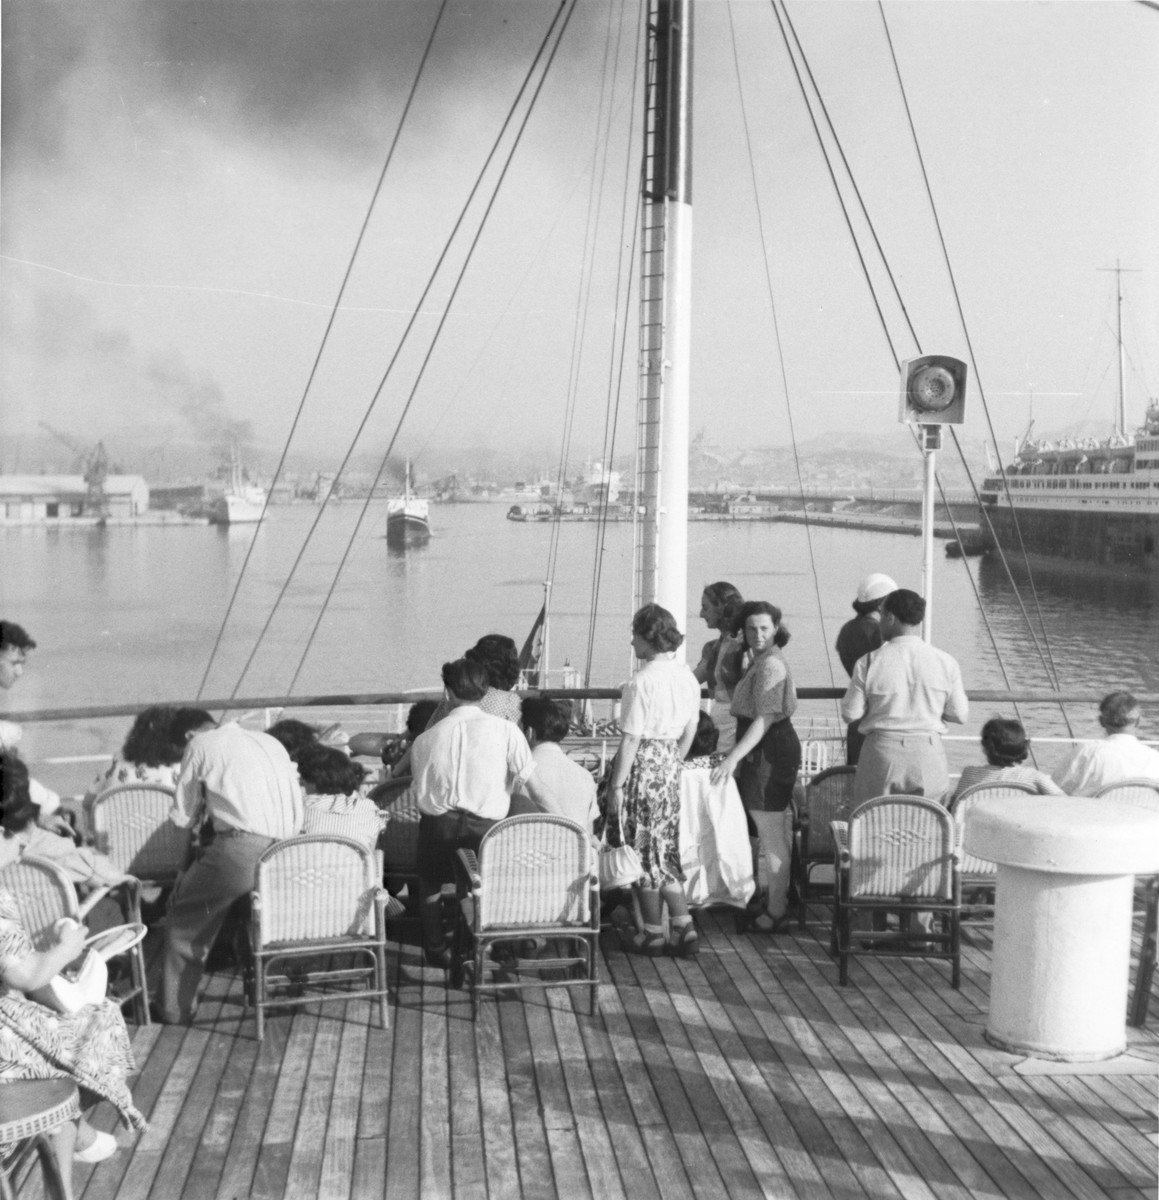 A group of Jewish students sits on the deck of the Kedma as the ship pulls out of the port of Marseilles on its way to Haifa, where they will be attending a meeting of the World Jewish Students.